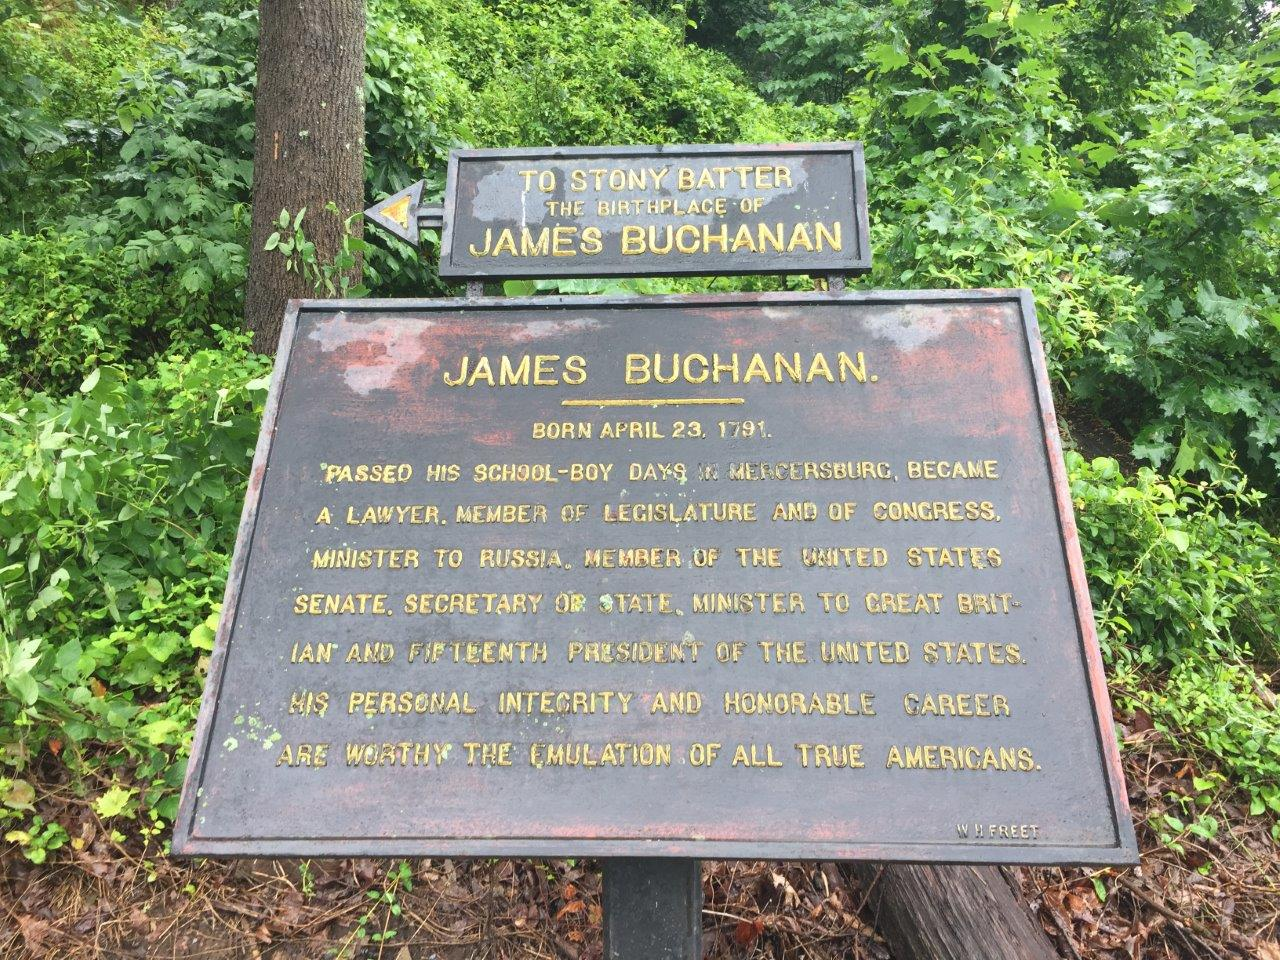 James Buchanan's birthplace sign to stony batter